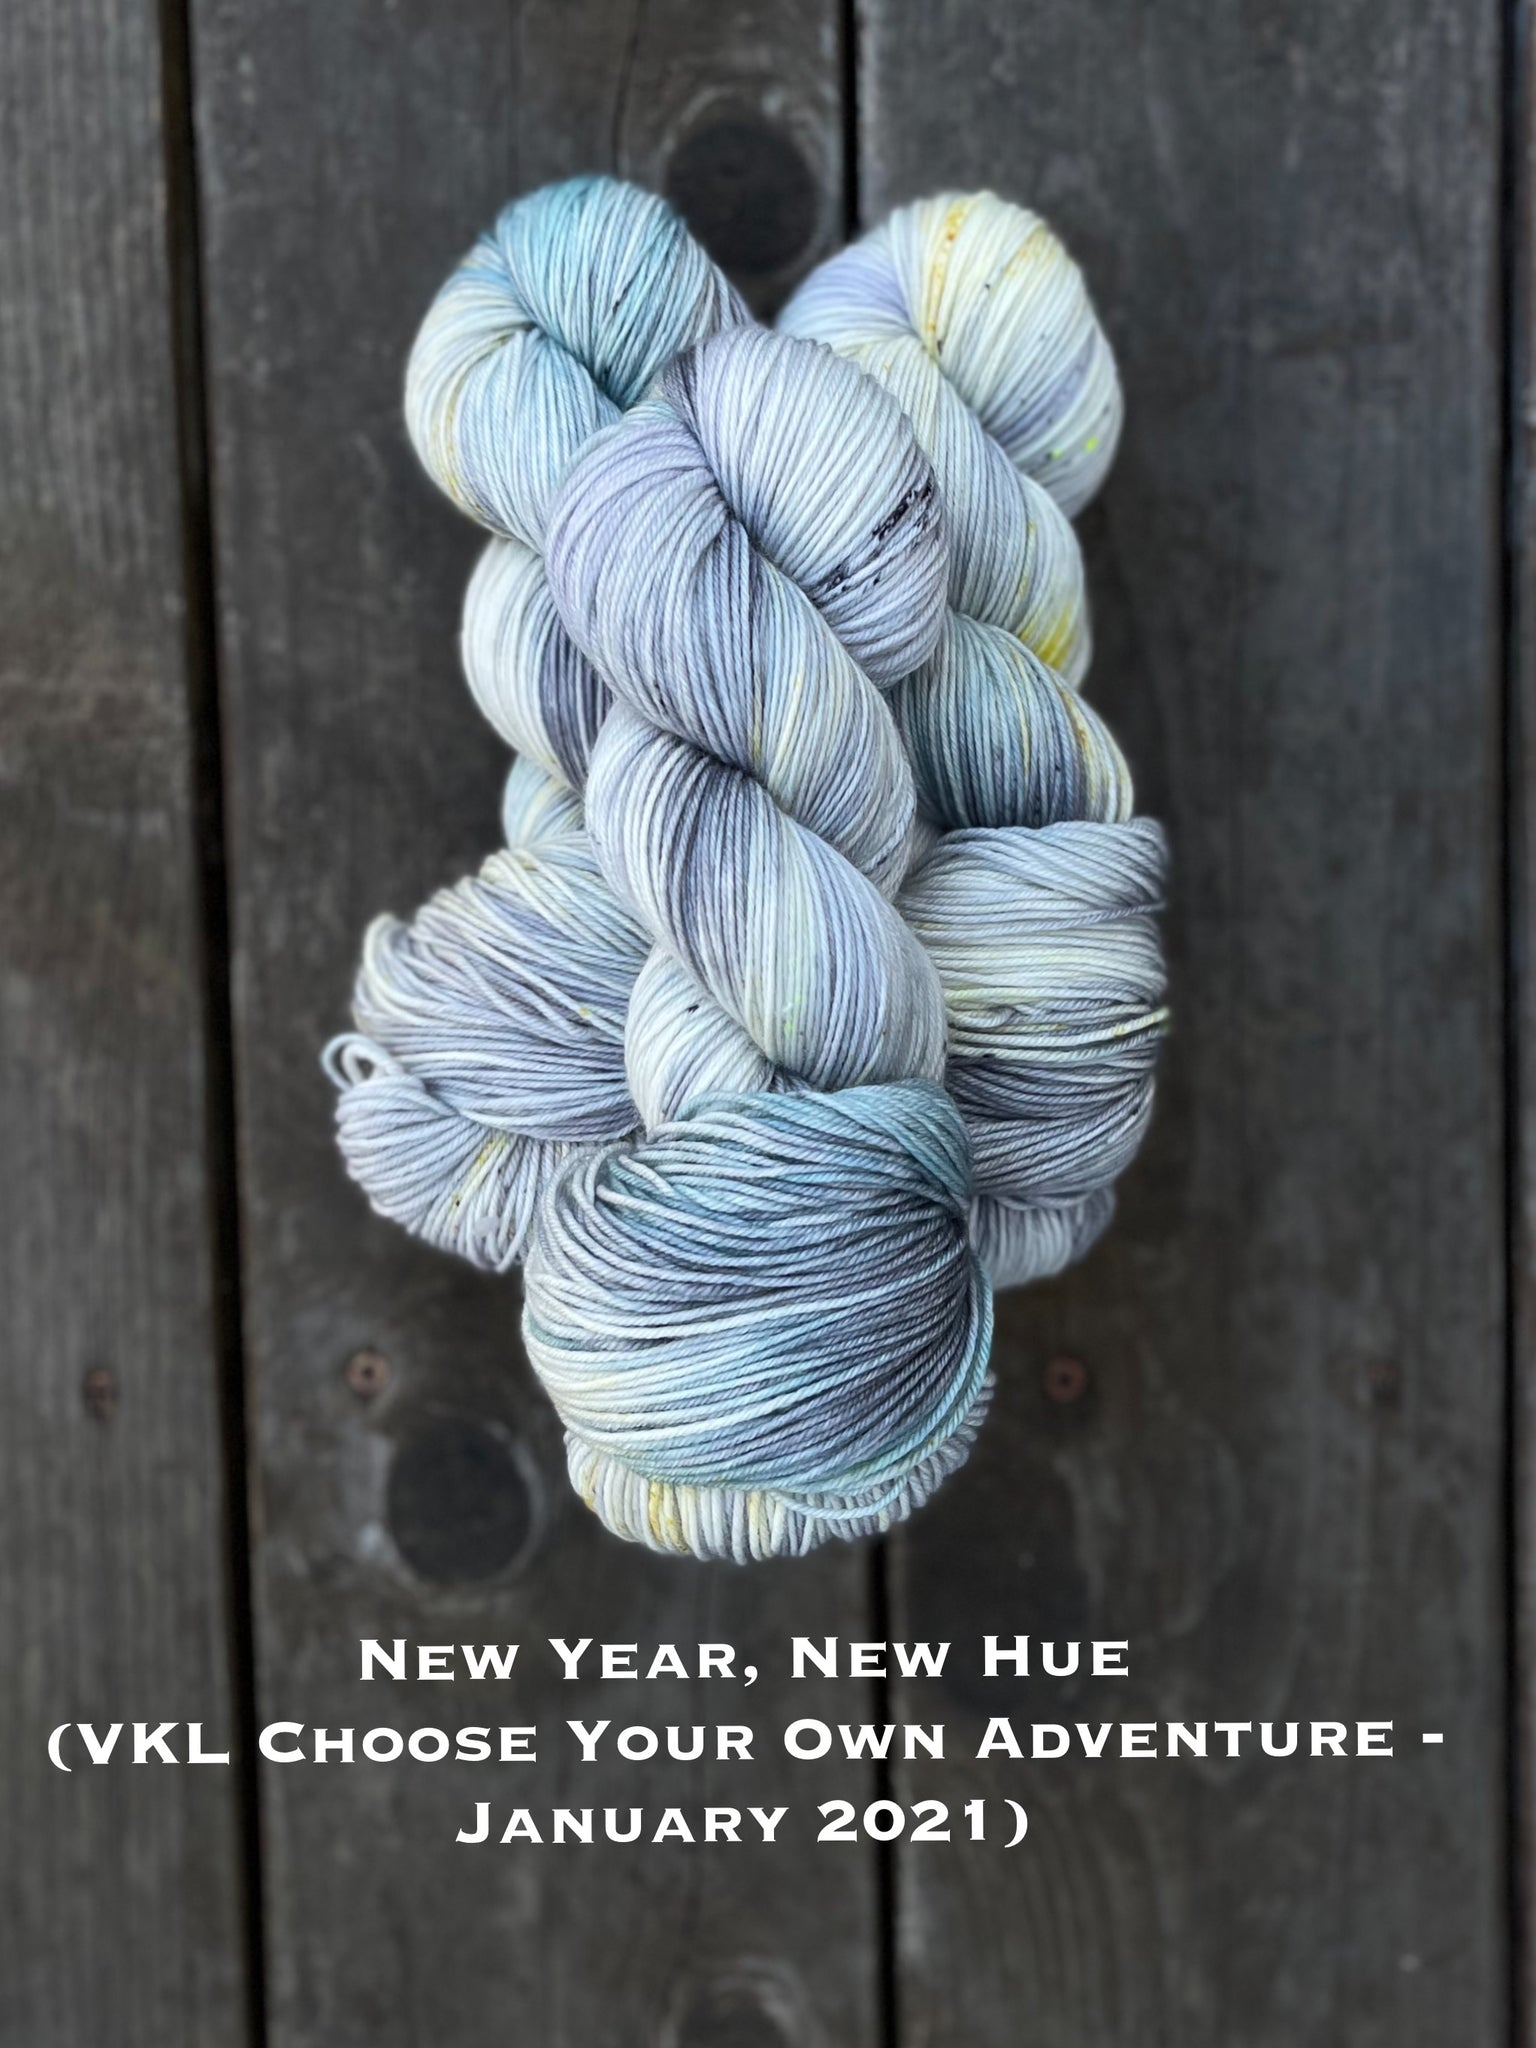 New Year, New Hue (VKL Choose Your Own Adventure - January 2021)